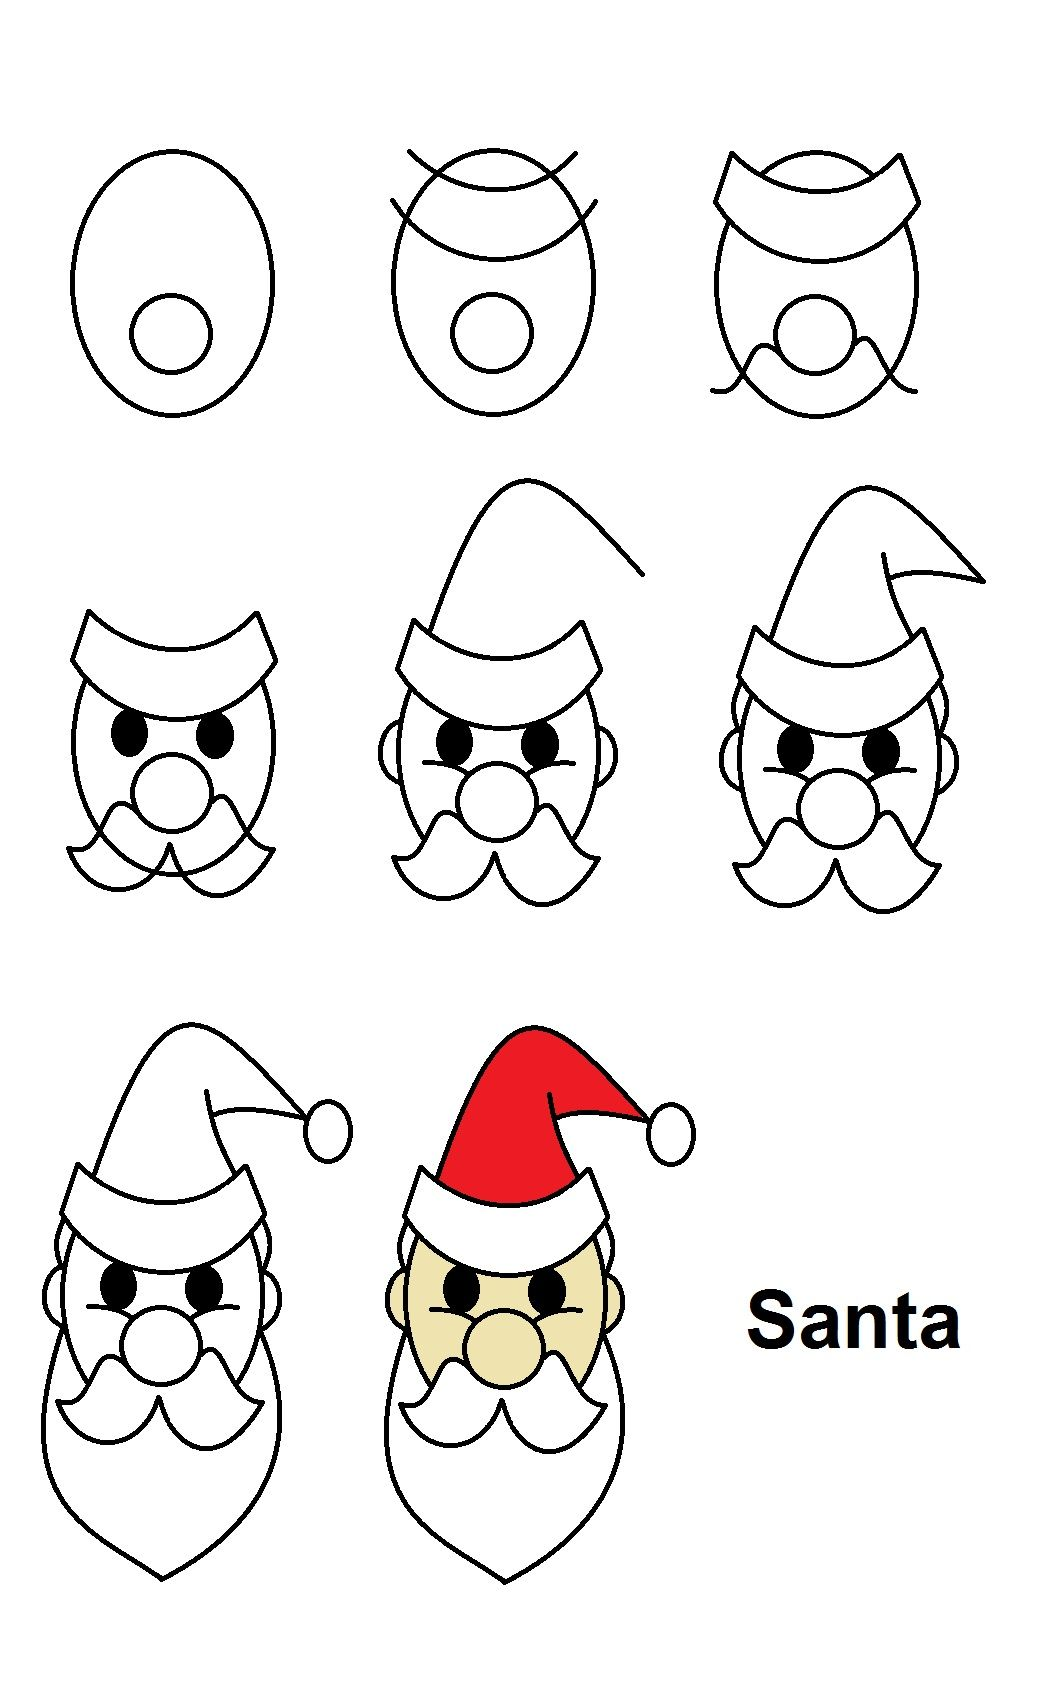 Stepbystep tutorial to draw Santa Claus. (With images